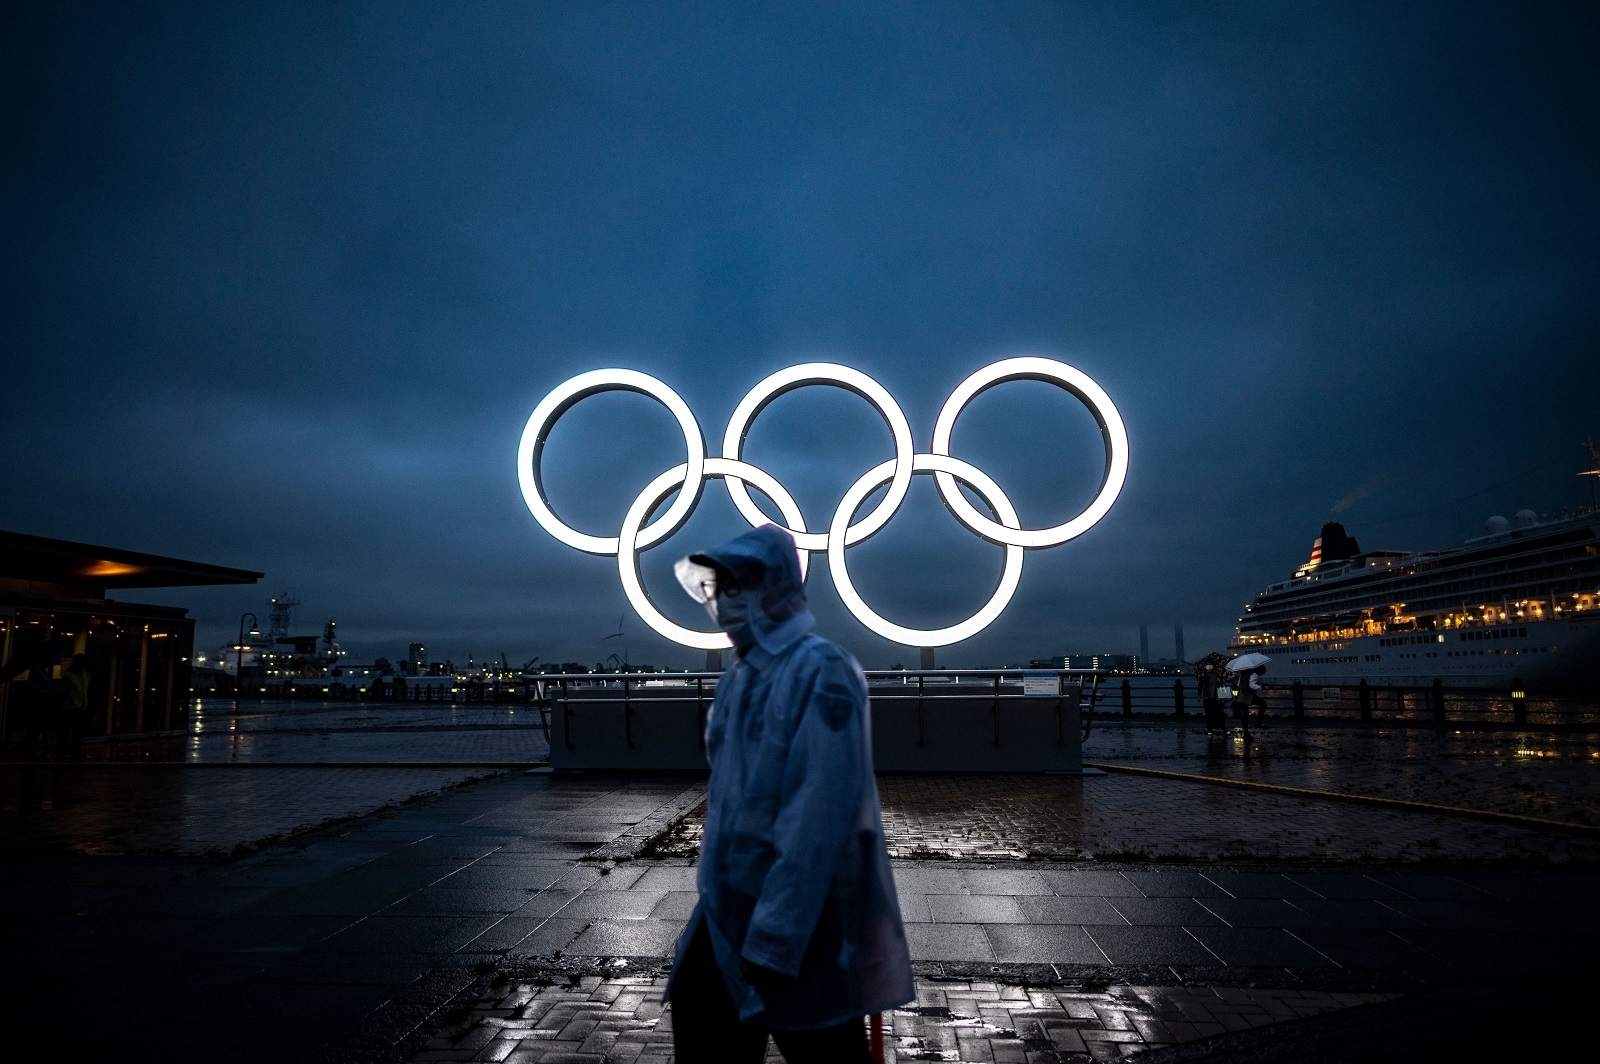 Olympic rings for the delayed Tokyo 2020 Summer Games light up at dusk in Yokohama, 2 July 2021 (Philip Fong/AFP via Getty Images)